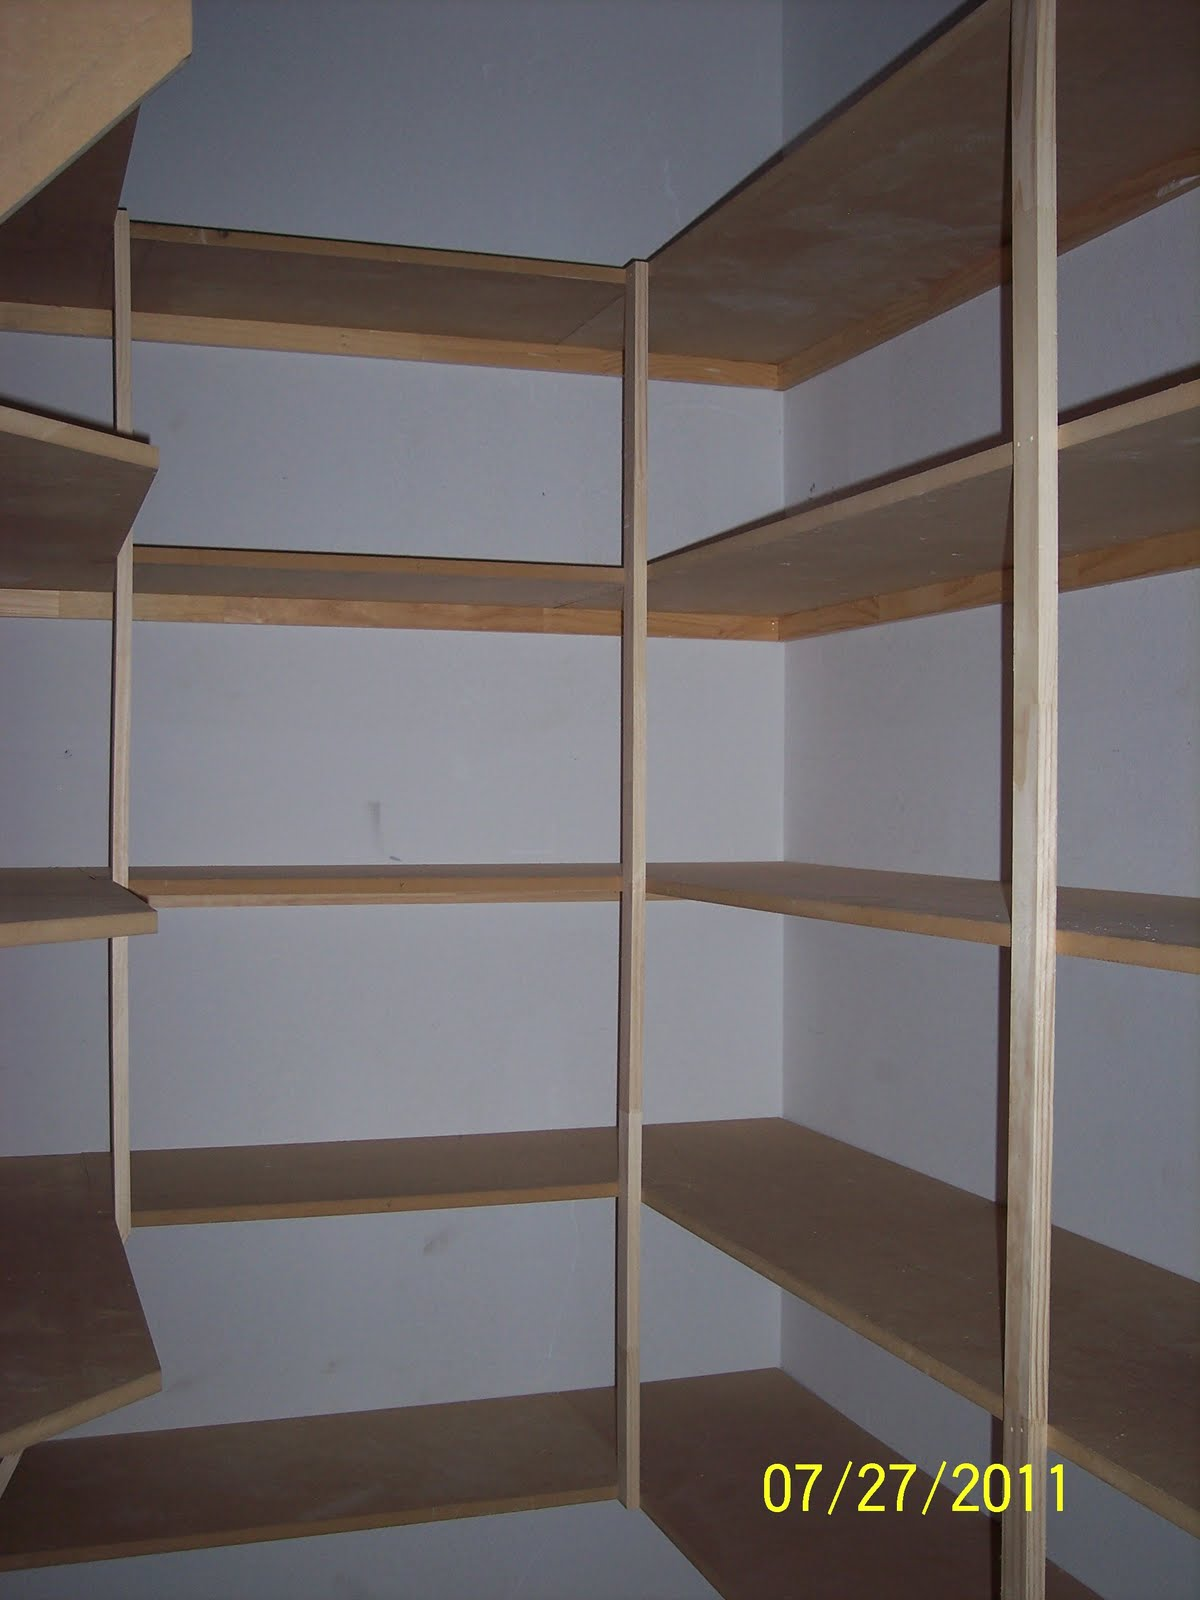 Building Wood Shelves In Pantry, Pantry... - Amazing Wood Plans